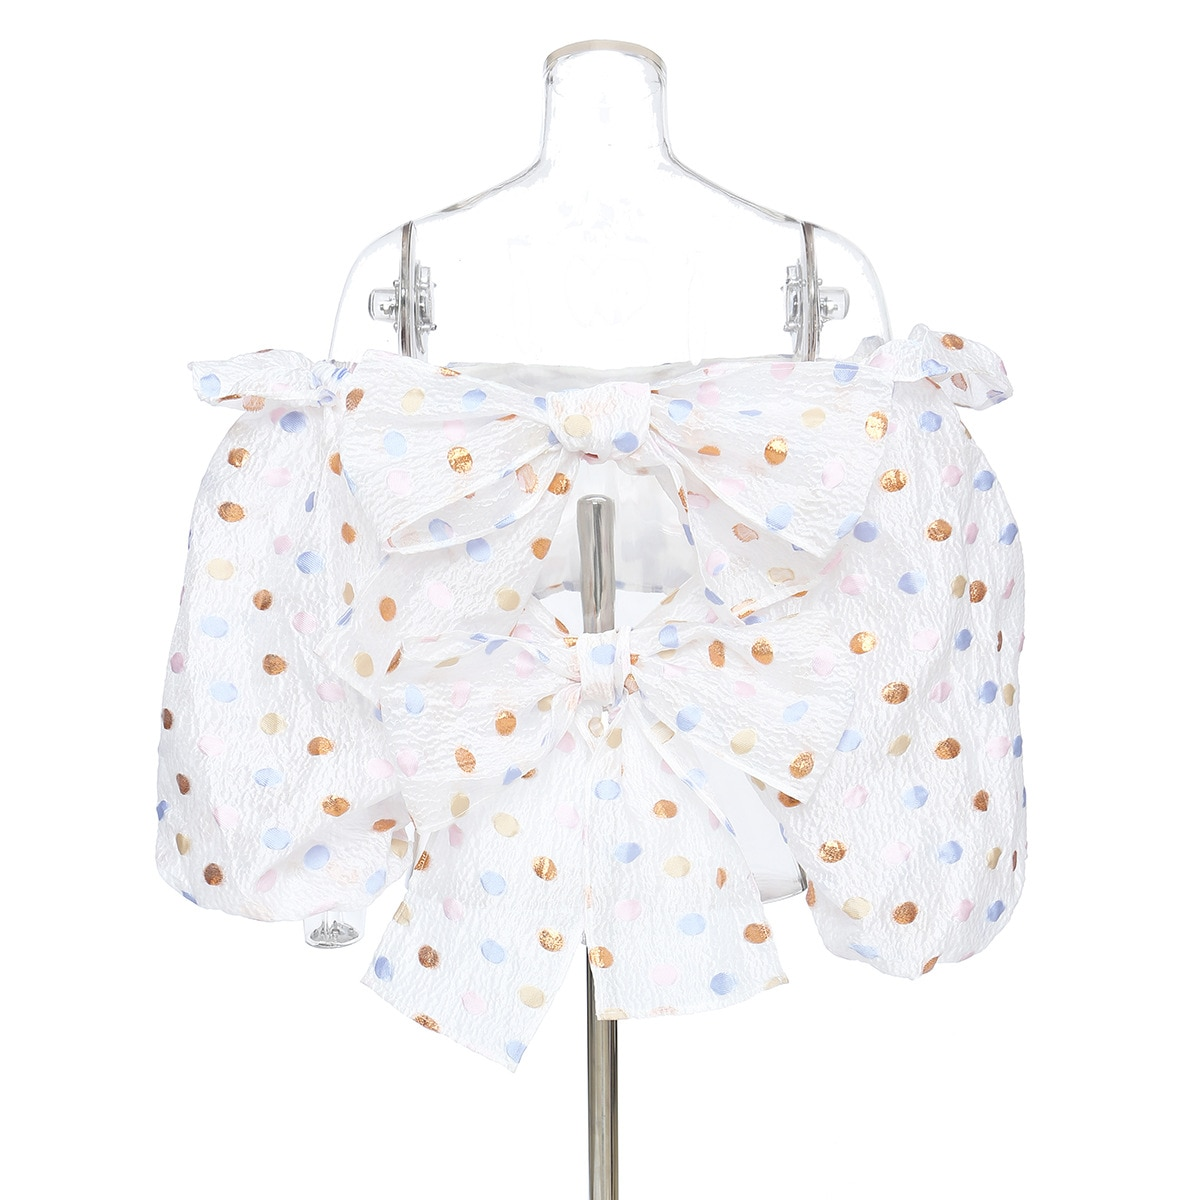 DEAT 2021 new spring and summer puff sleeves polka dots printed short high waist dobby fabric straps bow shirt WM29100L